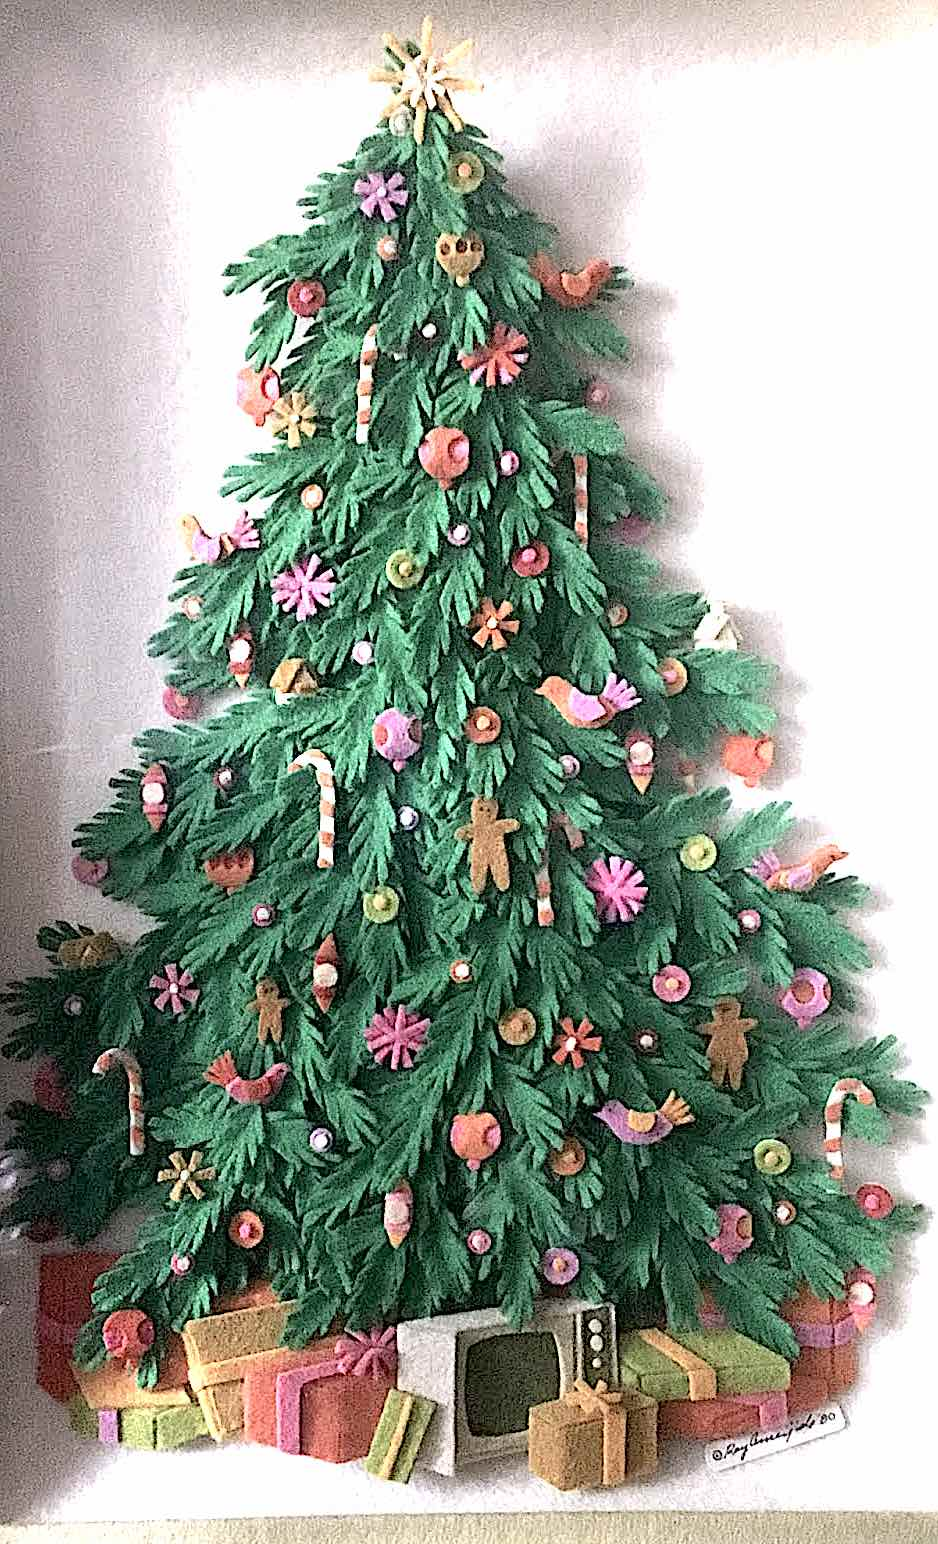 a Raymond Ameijide papercut children's illustration of a Christmas tree with gifts